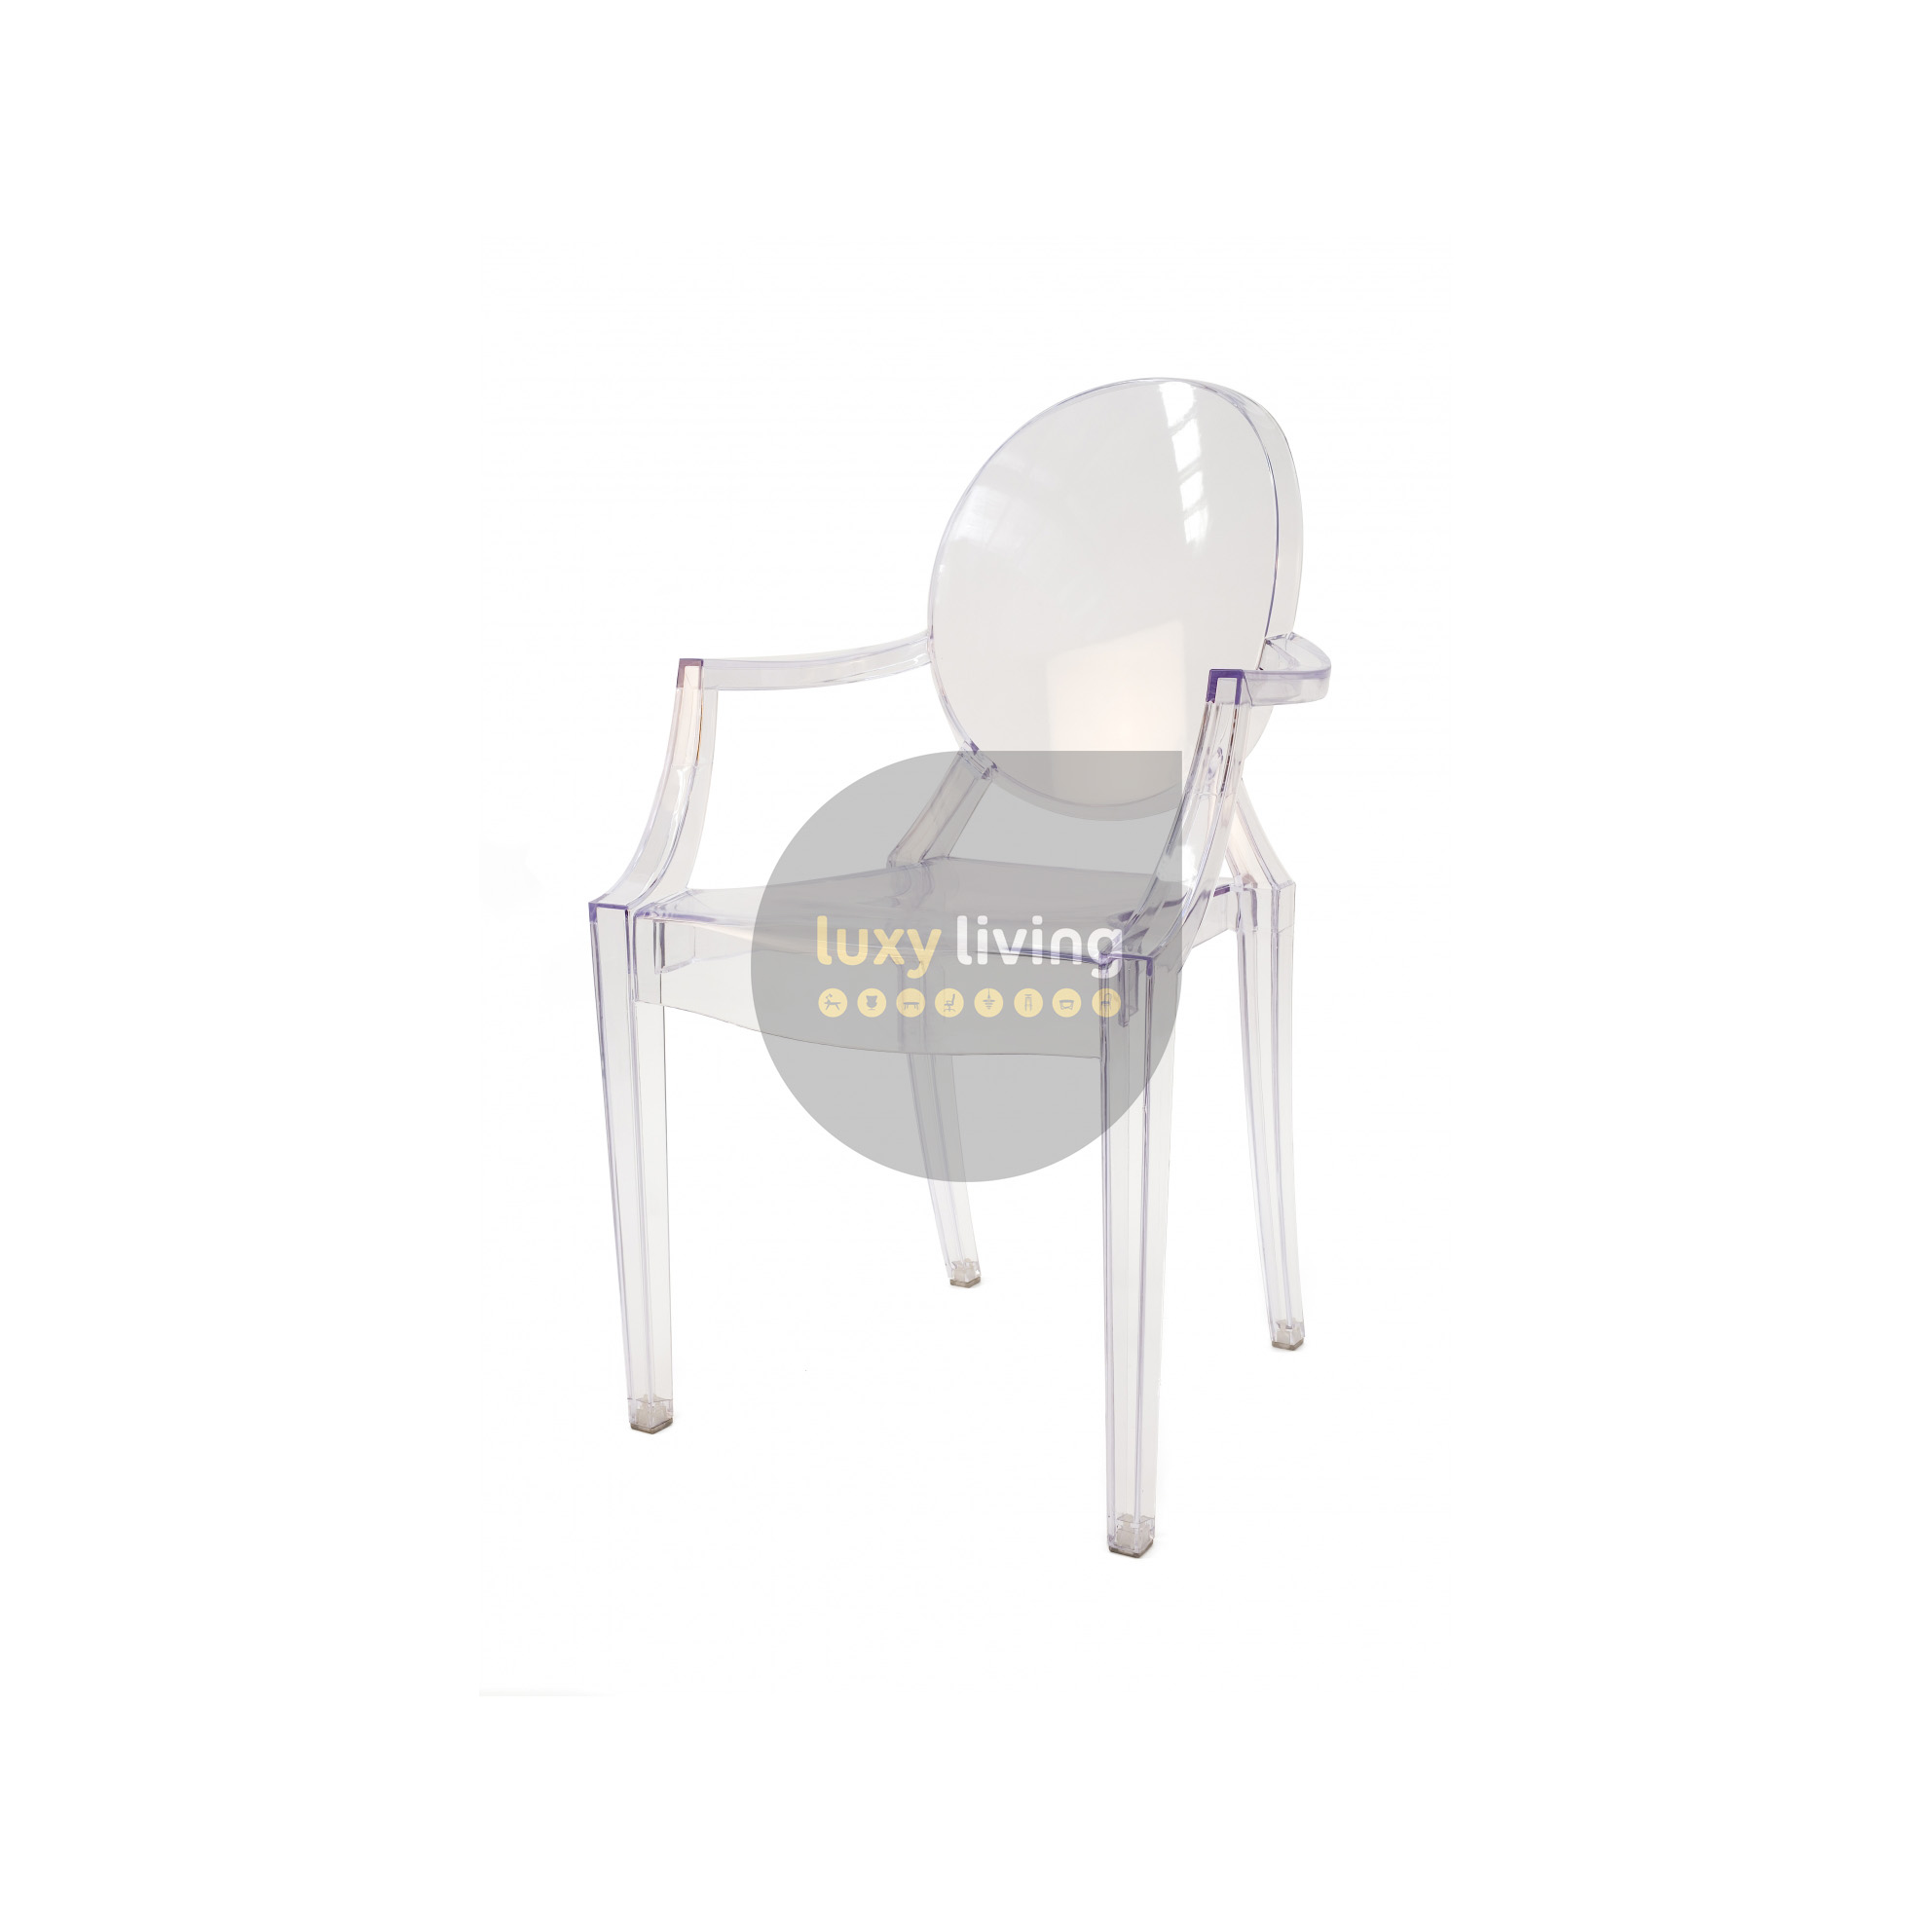 replica victoria starck products chair furniture eat ghost